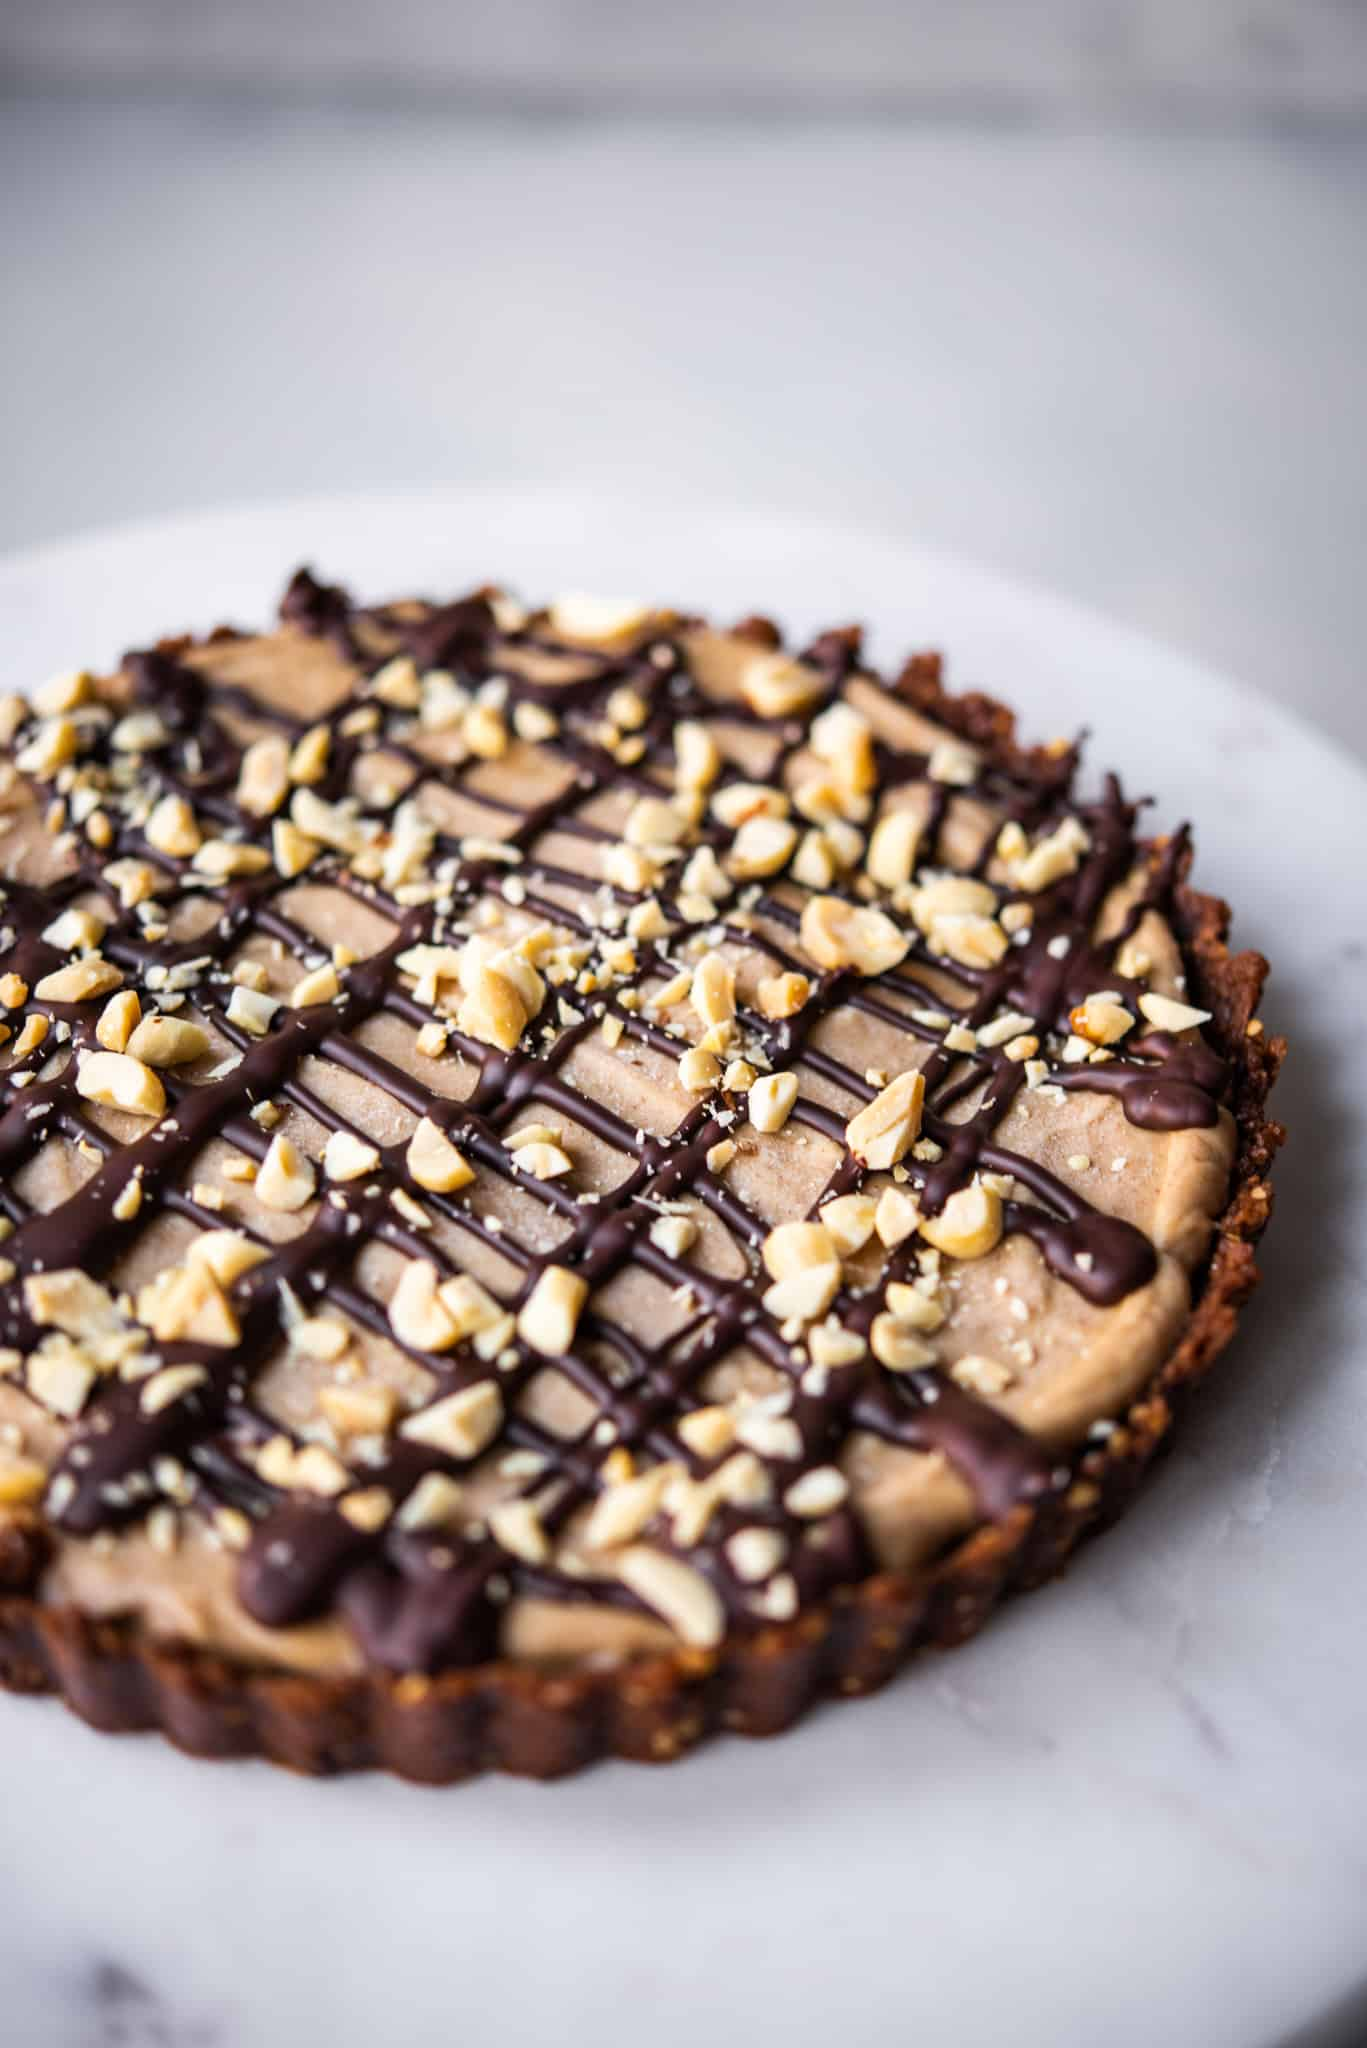 Side view of peanut butter mousse pie drizzled with dark chocolate and chopped peanuts on white background